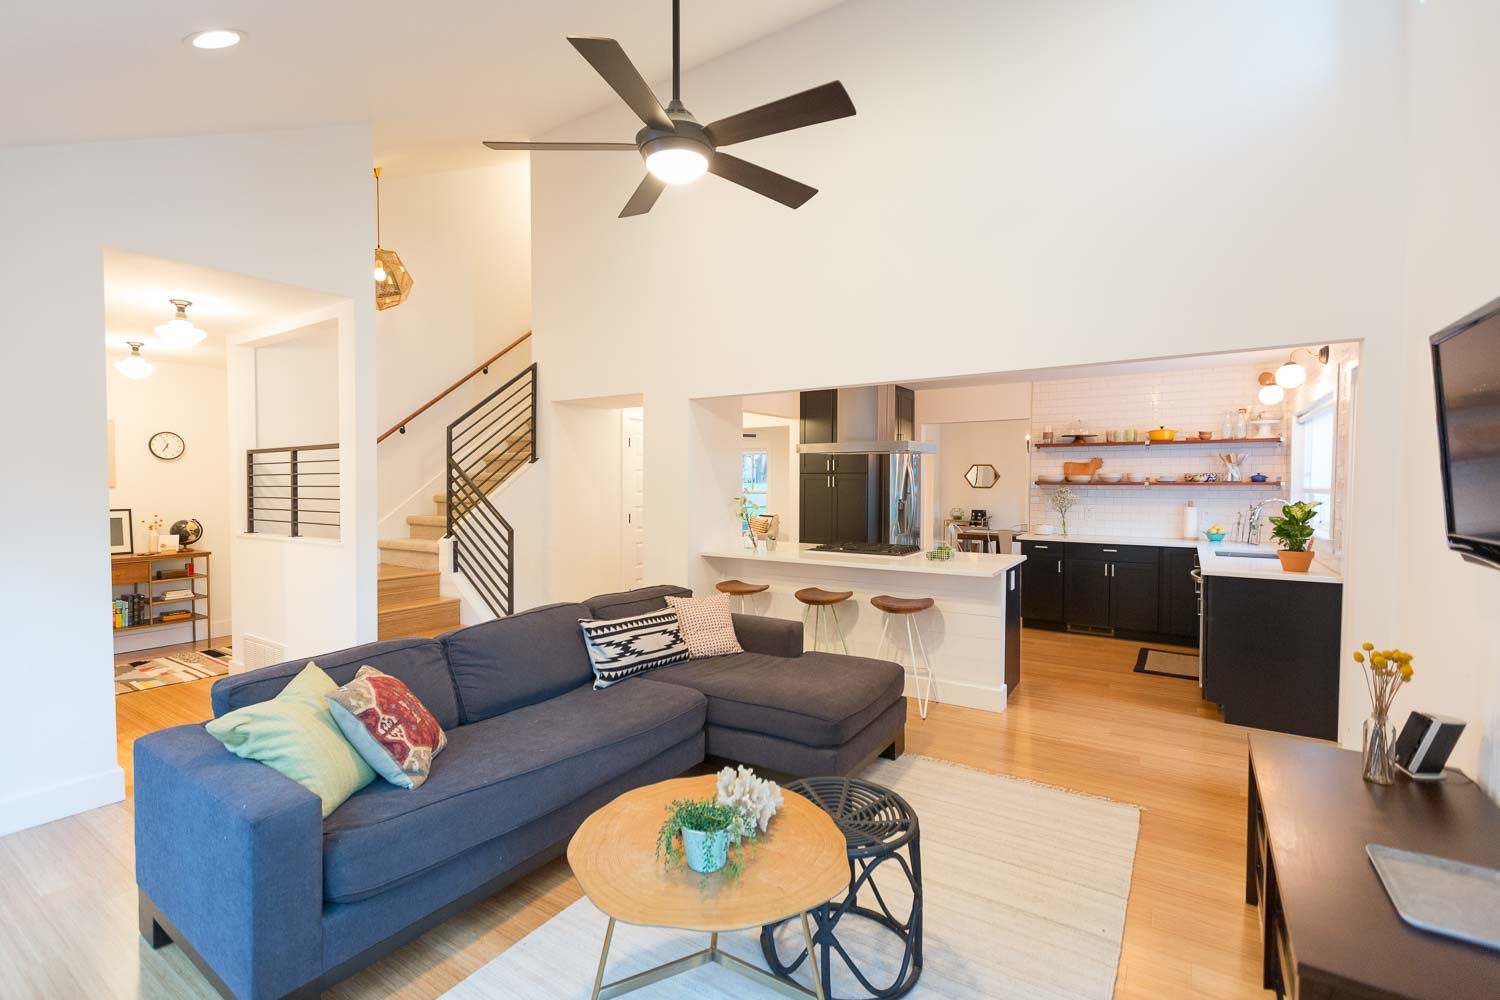 You can get an idea of the great floor plan this home now has thanks to Making Modern Home's space planning.